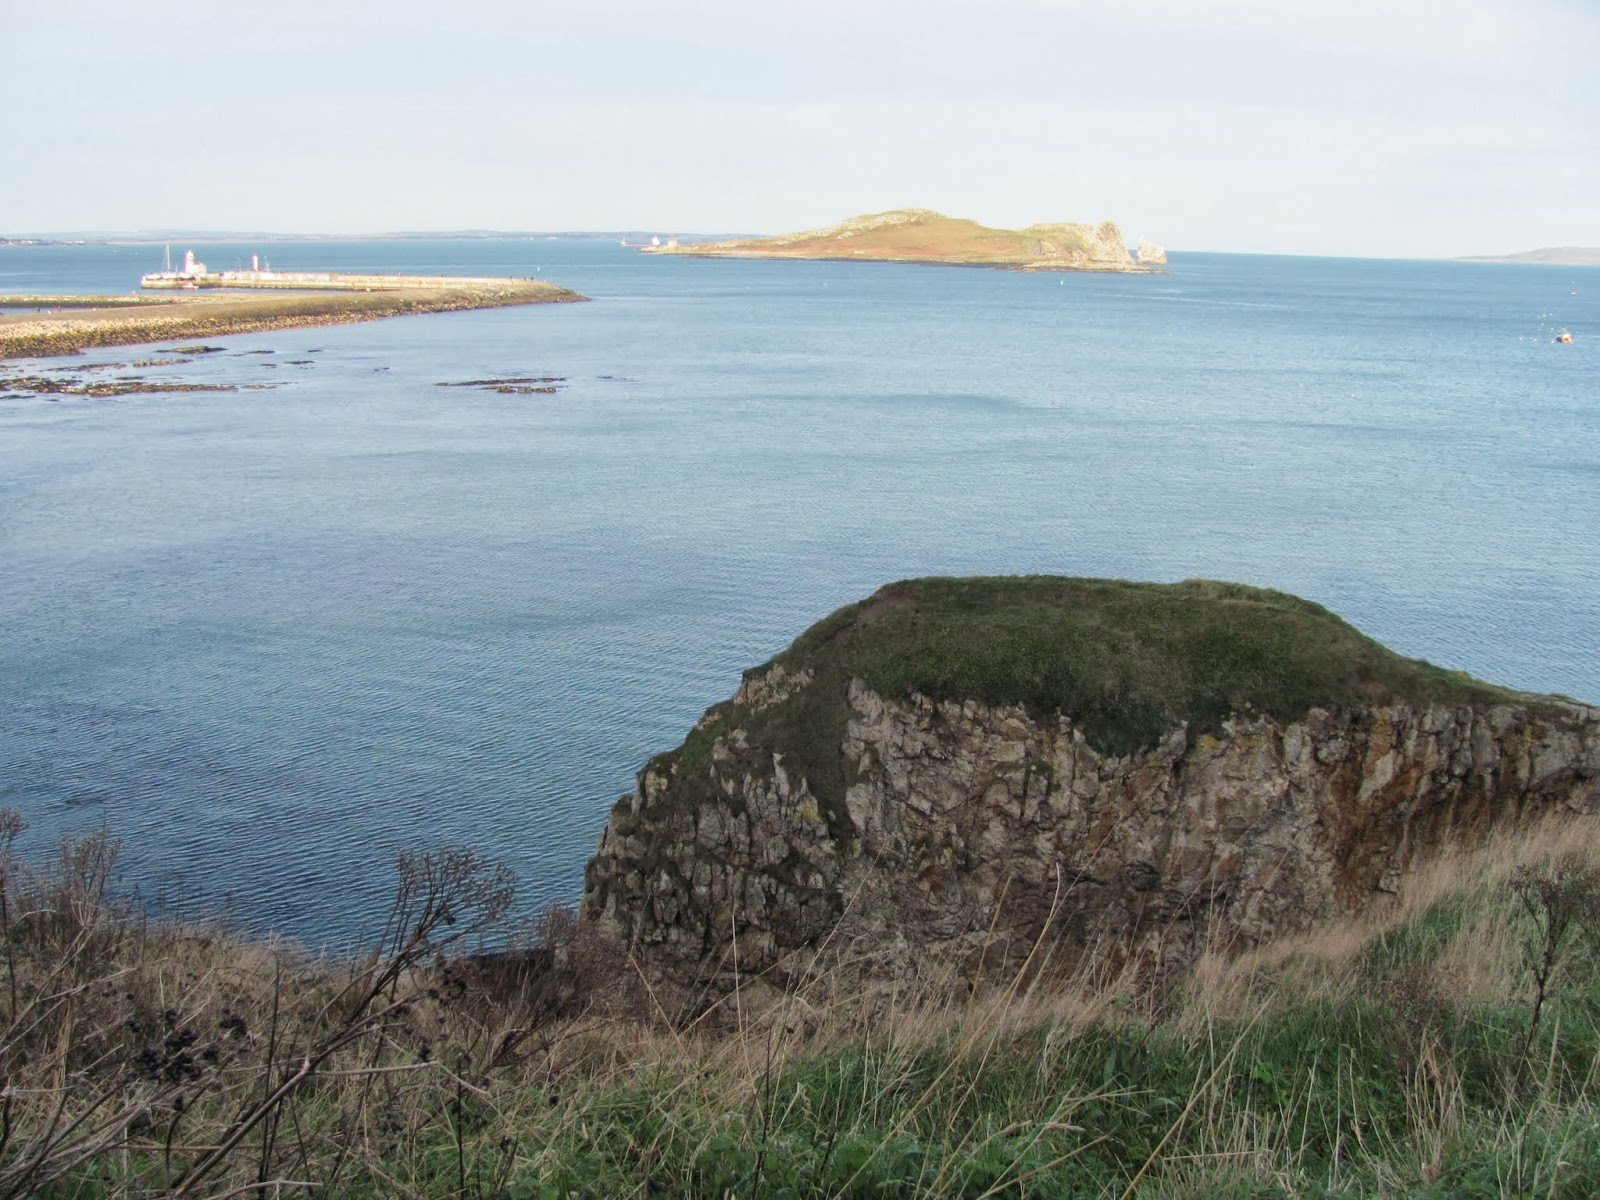 Ireland's Eye Island seen from Howth